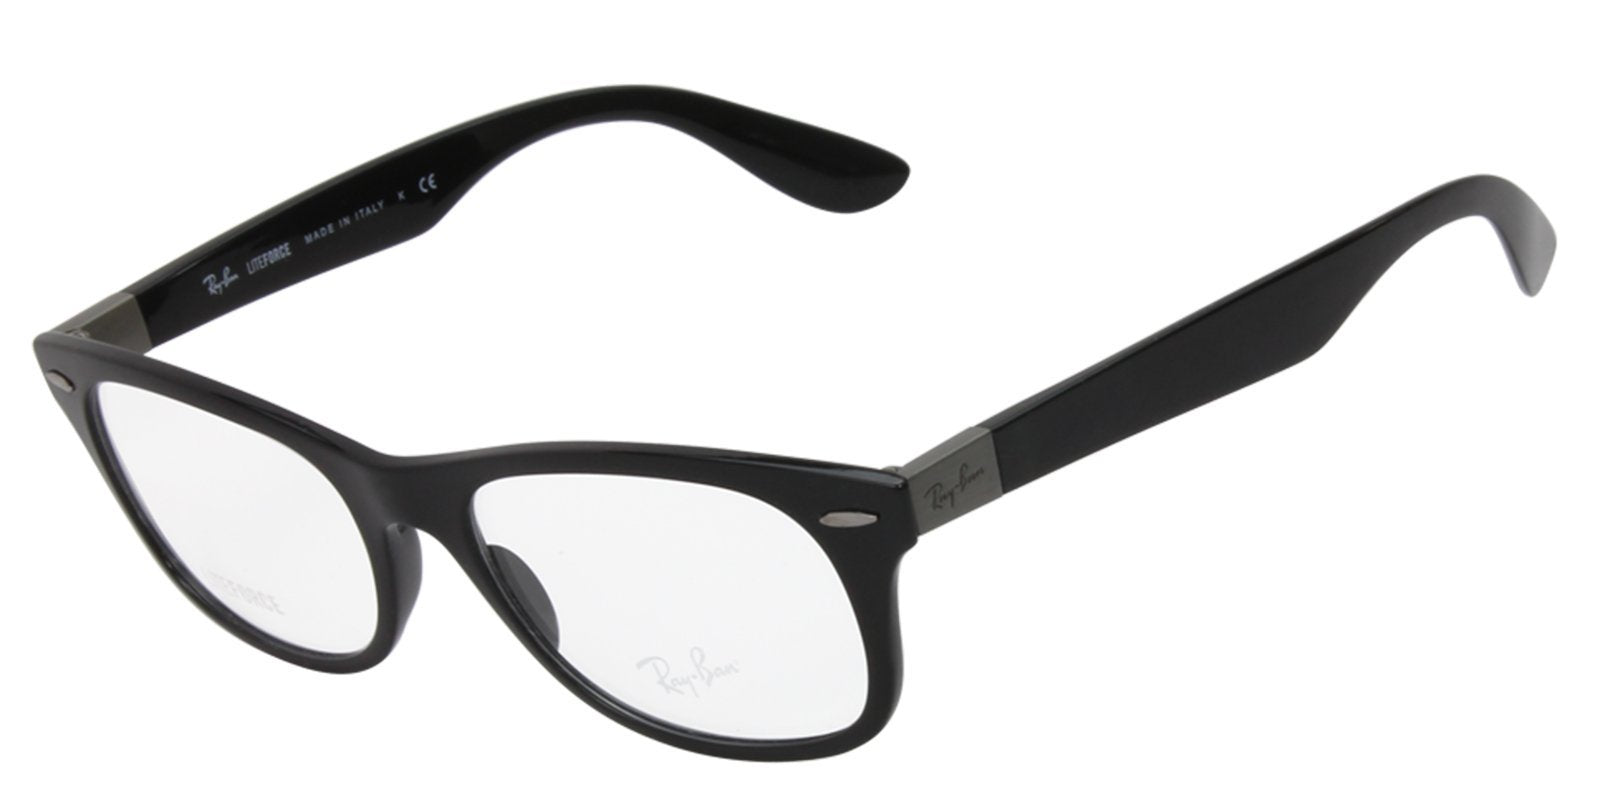 Ray Ban Rx - RX7032 Black Rectangular Men, Women Eyeglasses - 52mm-Eyeglasses-Designer Eyes